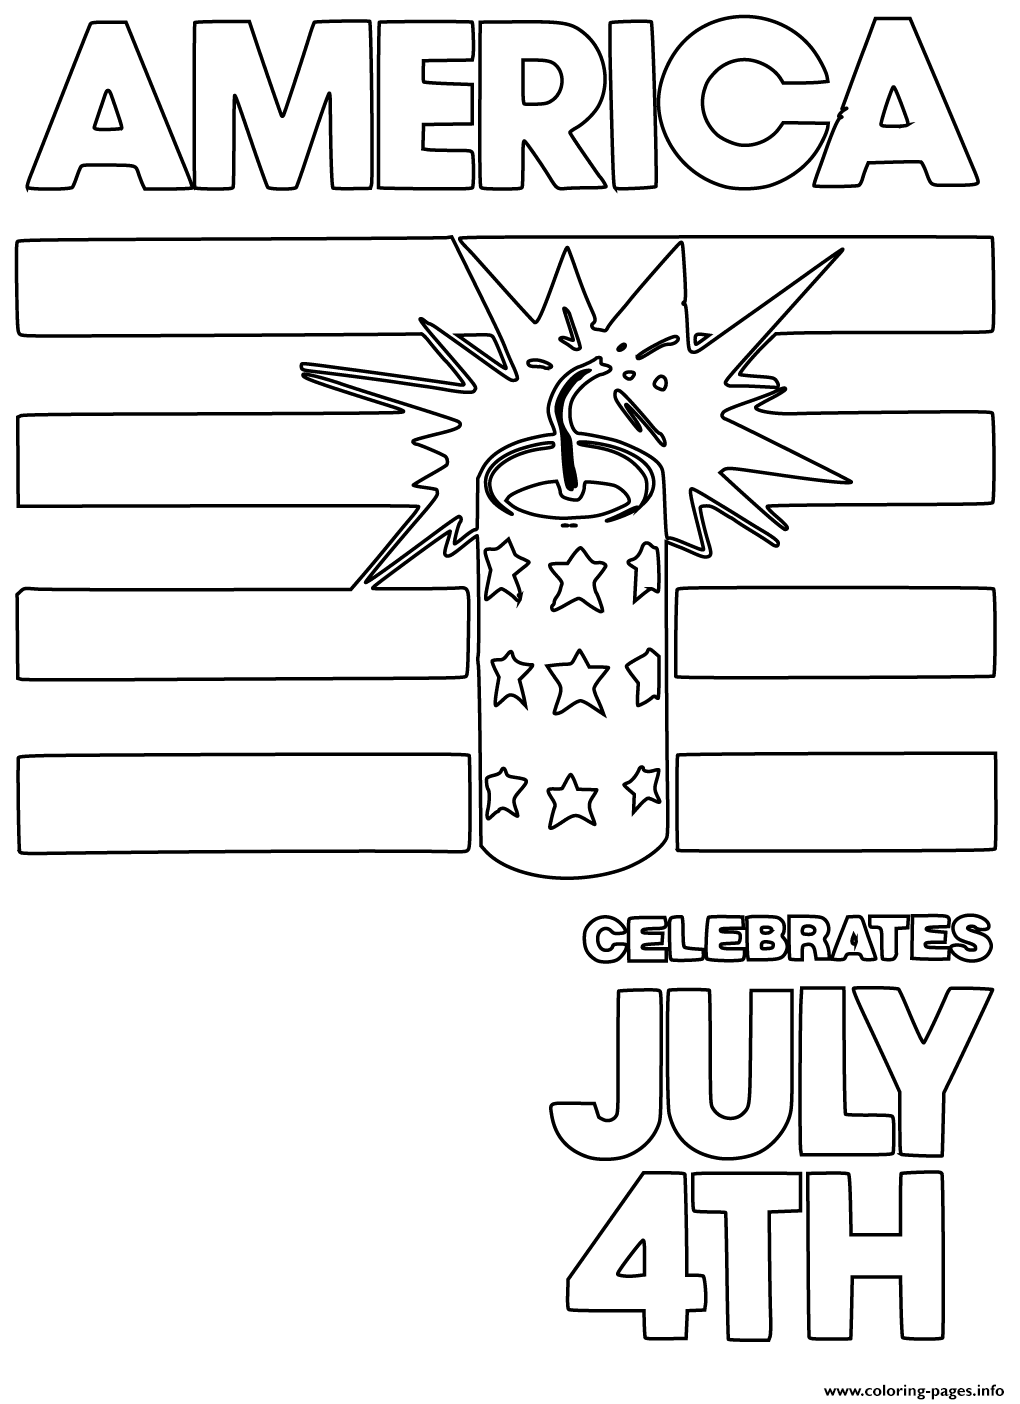 America Celebrates July 4th coloring pages